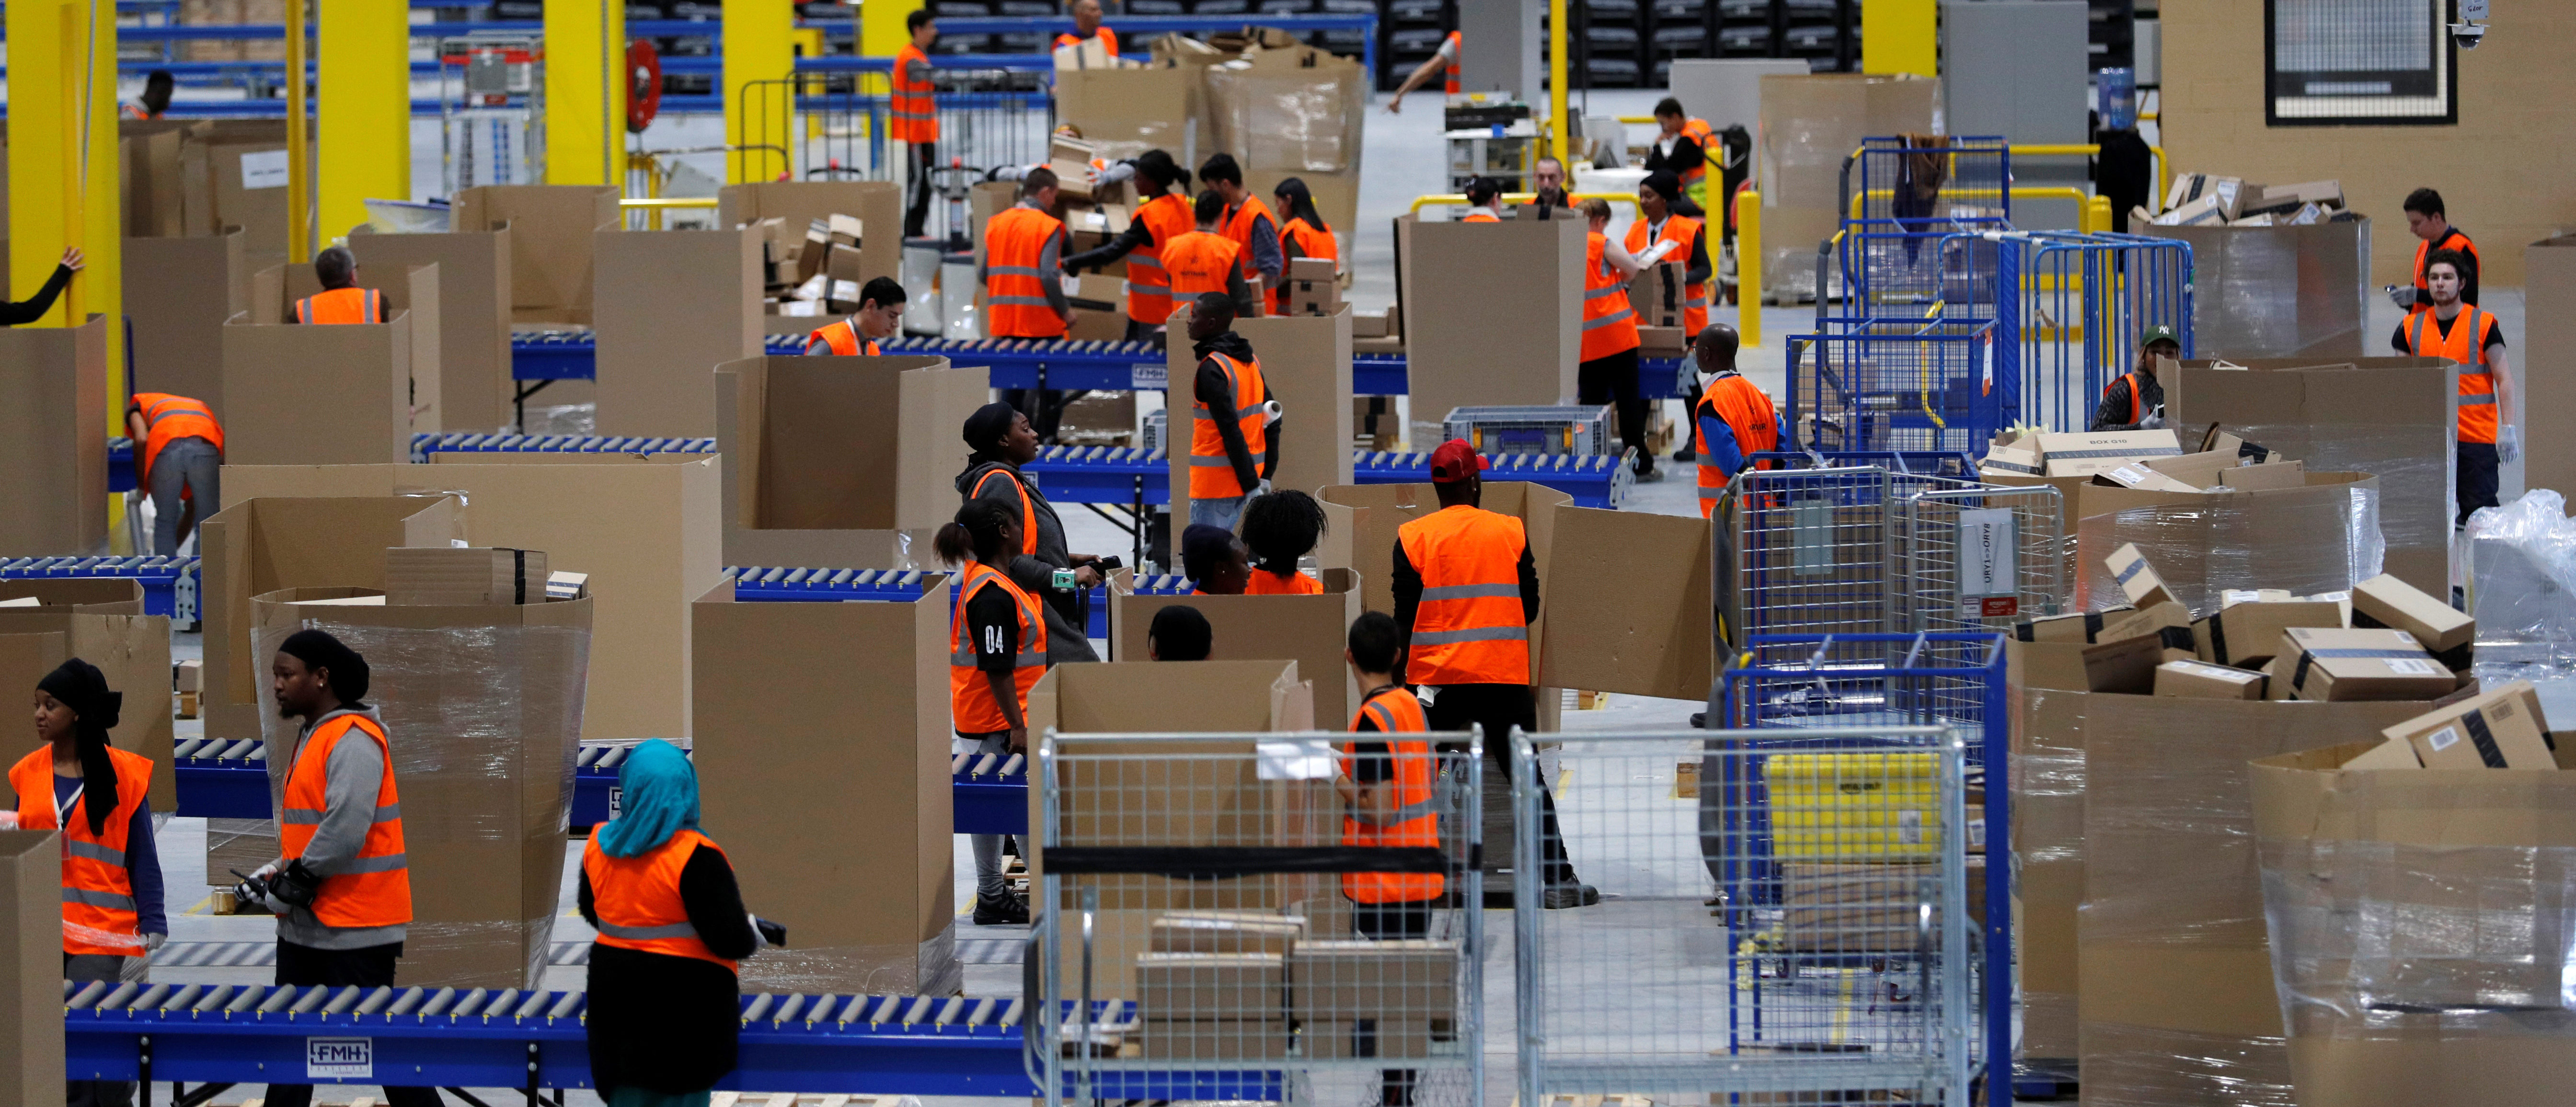 Employees work at the Amazon distribution center warehouse in Saran, near Orleans, France, November 22, 2016. REUTERS/Philippe Wojazer